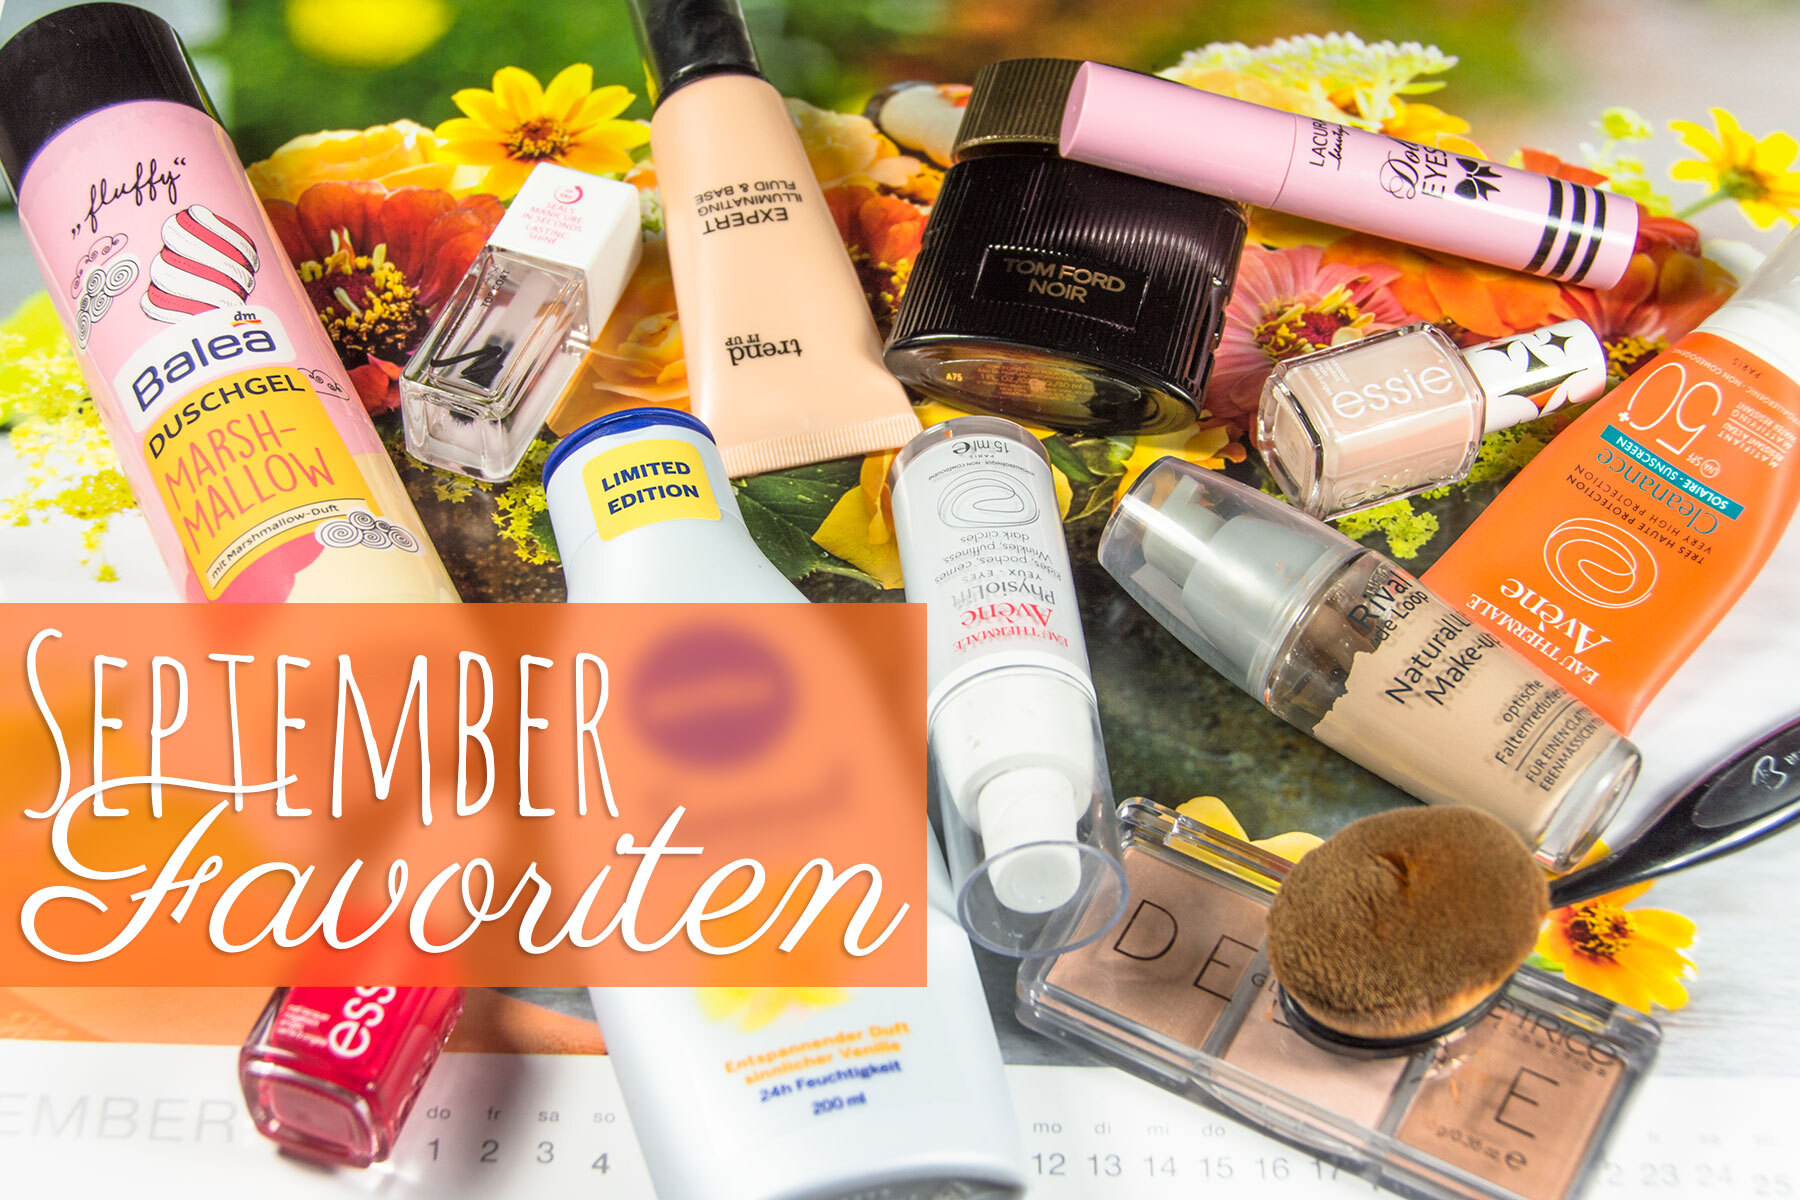 September Favoriten